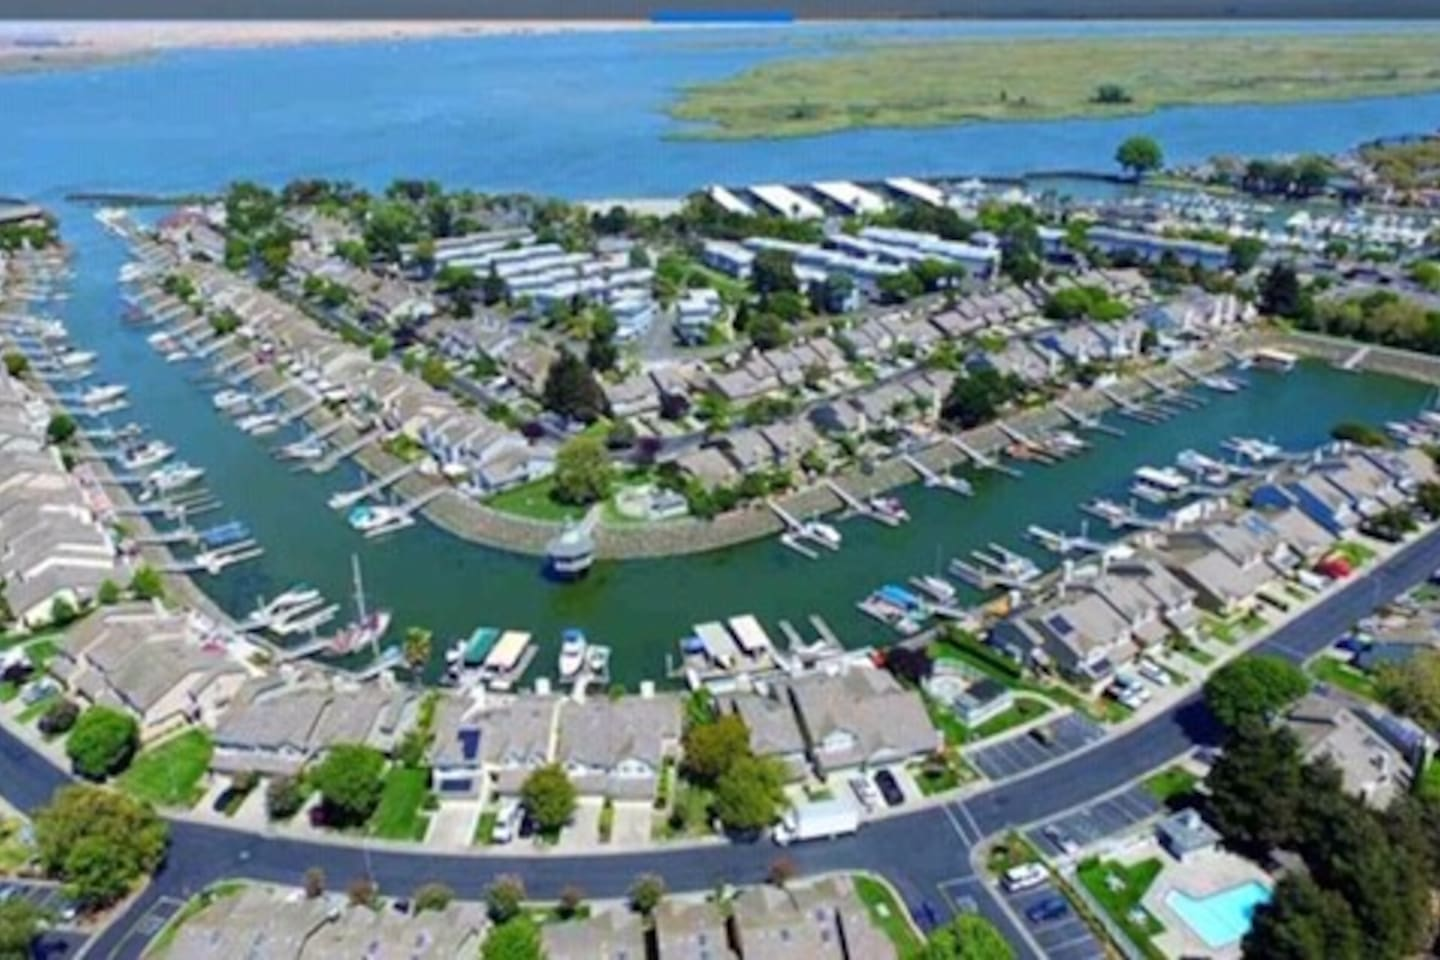 An aerial view from South looking North of my community and confluence of Sacramento & San Joaquin rivers. Browns Island in the background. Very popular water sports and fishing spots. The Pittsburg Yacht club 100 yards from my door step.